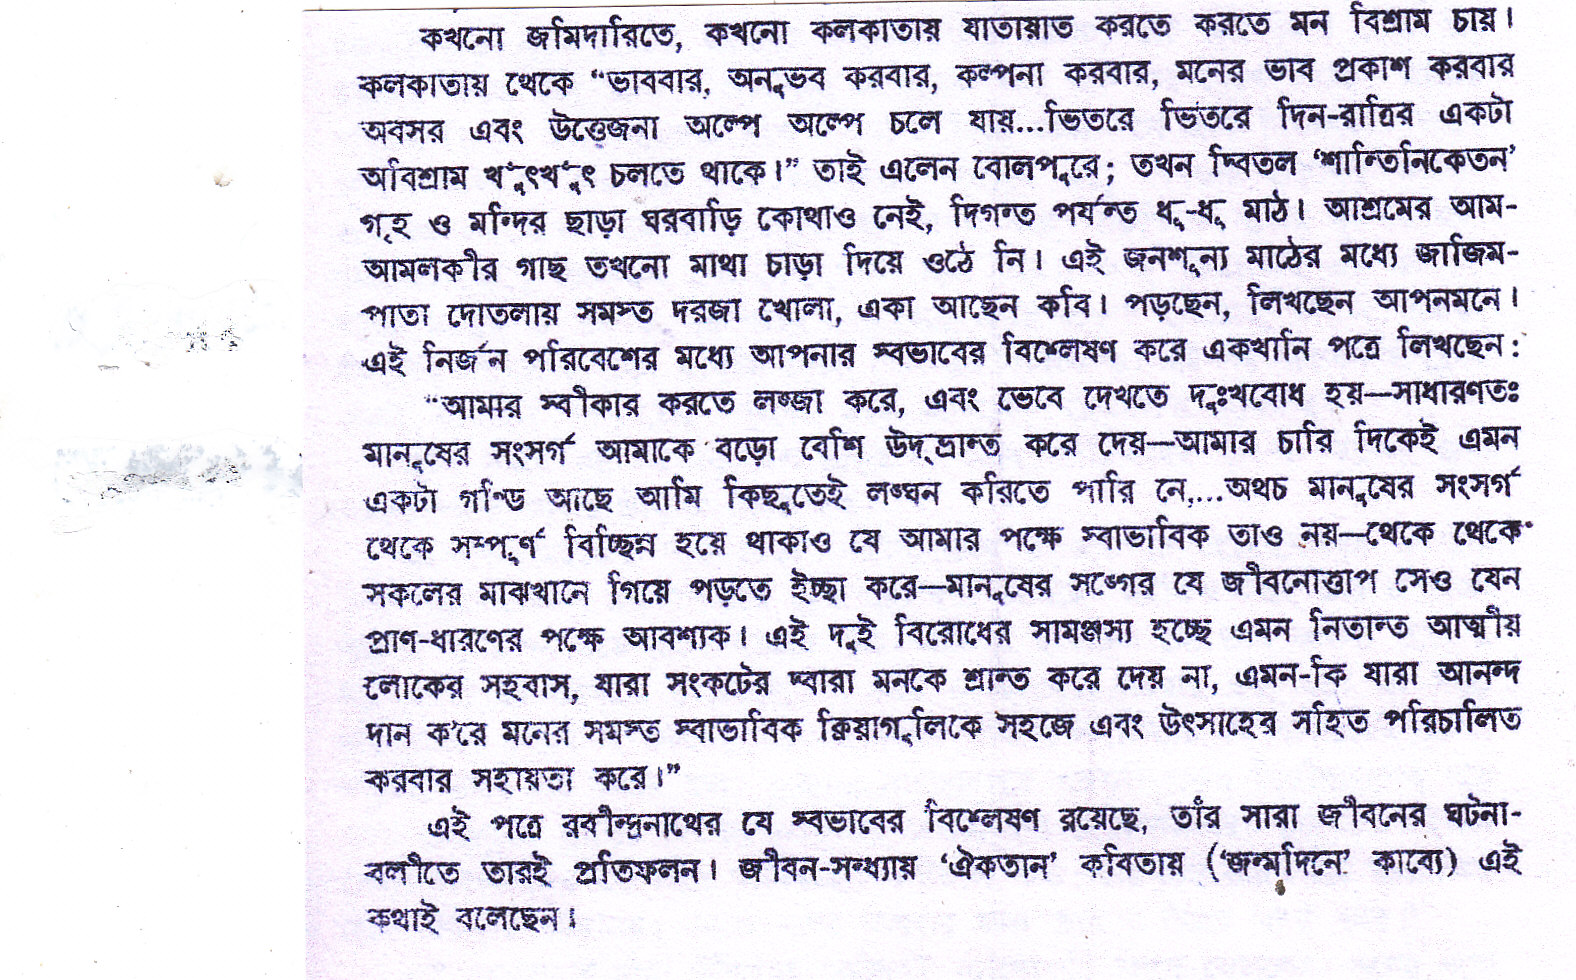 Make Essay Longer Nabin Chandra Sen And Rabindranath Tagore Were Elected Vicepresident For  The First Year Rabindranath Wrote The Introduction Of Thakurmar Jhuli  Written  Expository Essay Topic also White Australia Policy Essay Smaraka Grantha Birth Of Youngest Daughter Mira Rough Draft Essay Example